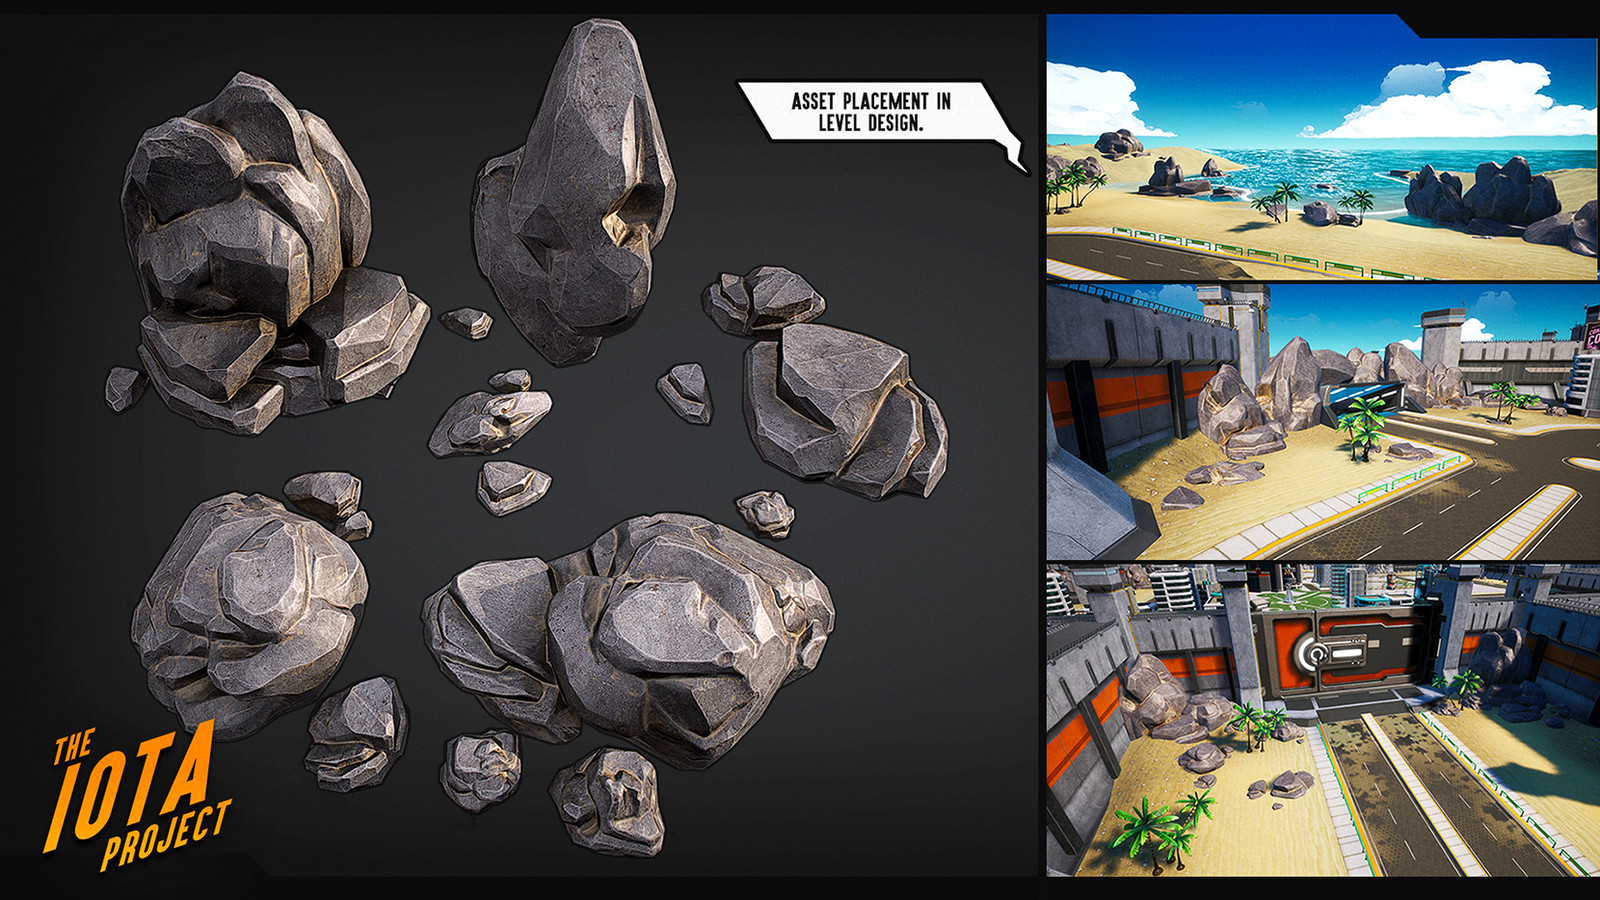 I created and helped produce many of the environmental assets such as the rocks and trees